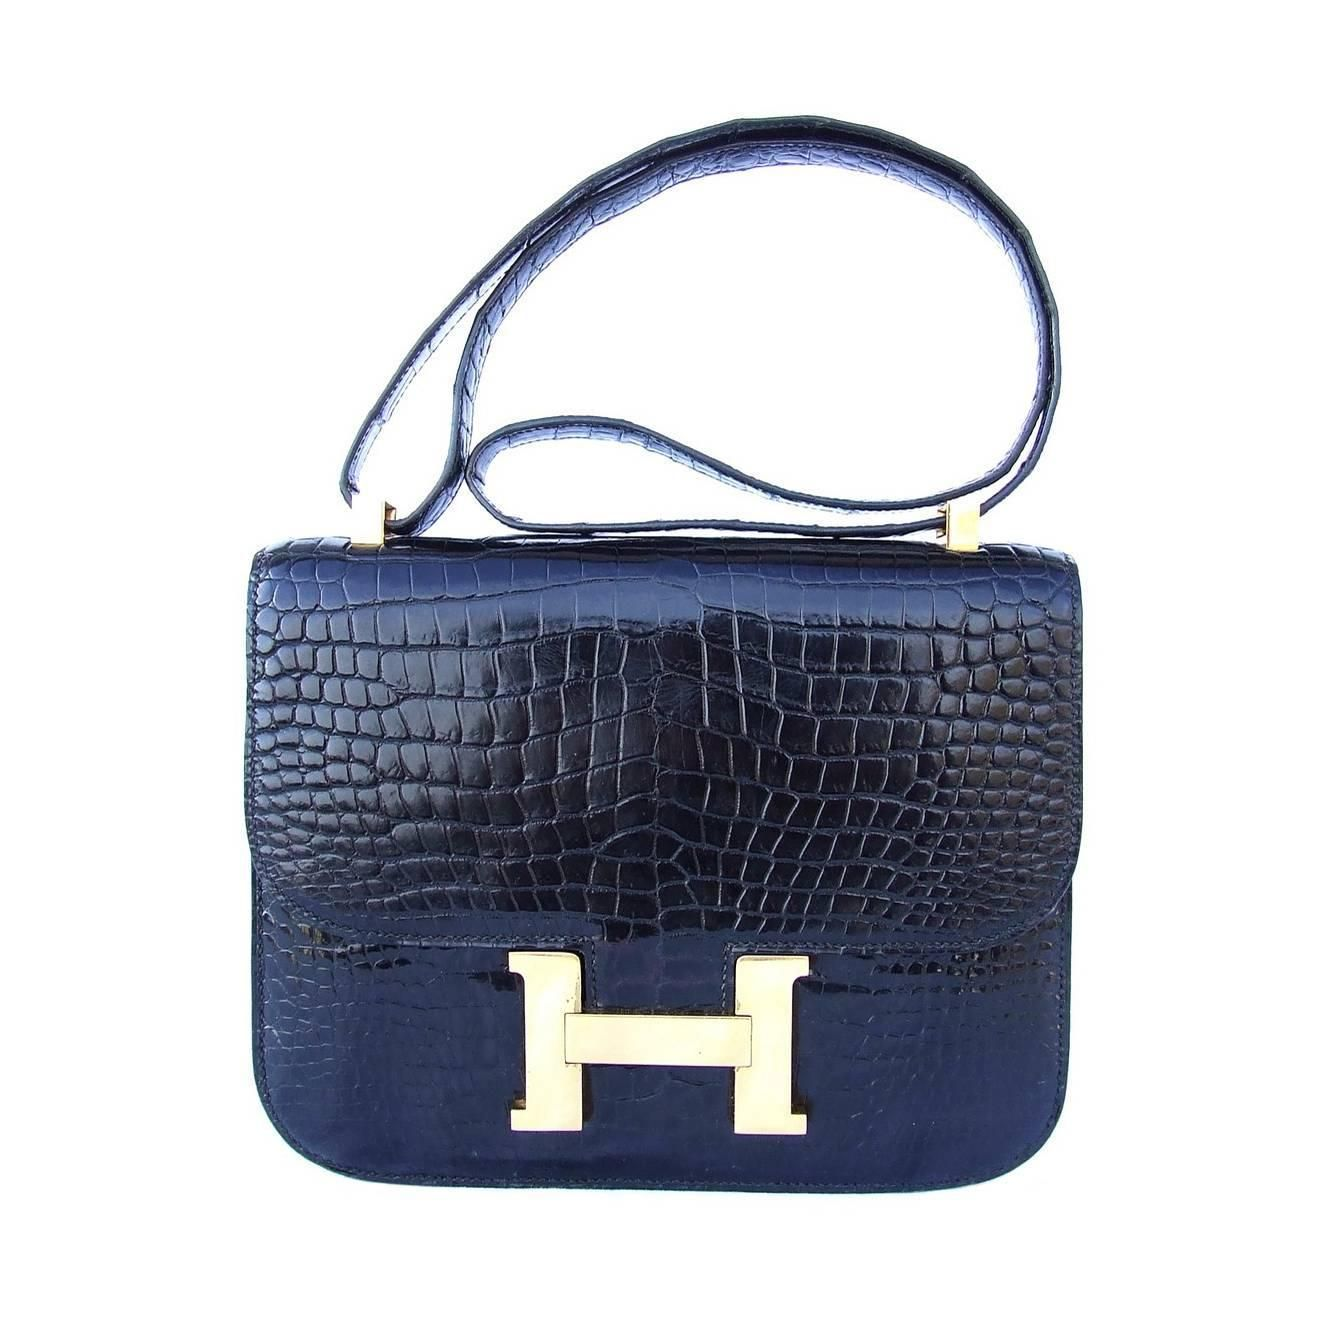 e6f02a1d8950 Hermes Constance H Flap Bag Black Shiny Crocodile Gold HDW 23 cm ...